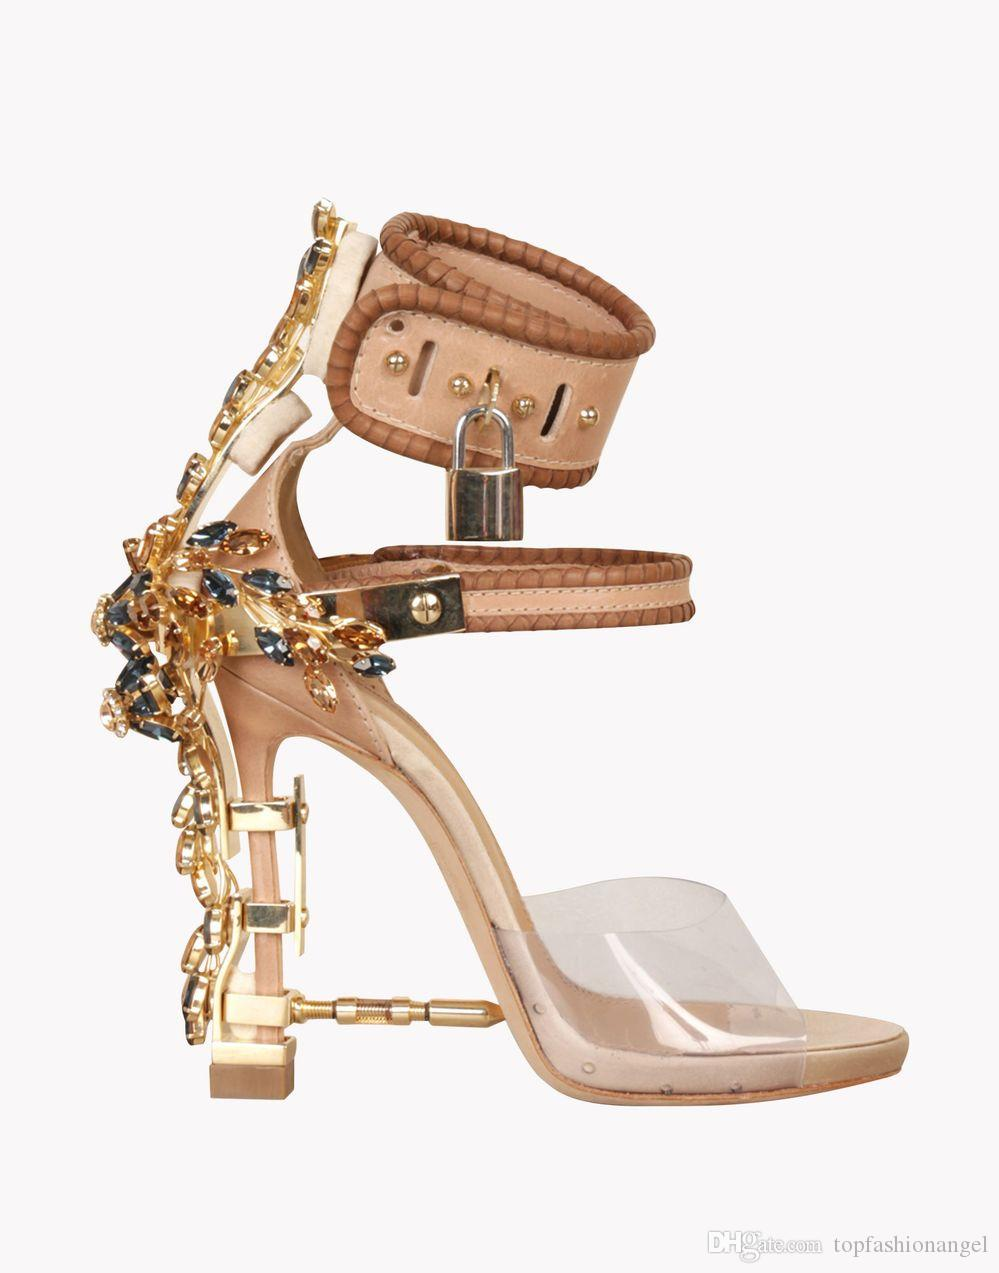 top fashion runway colorful crystals beaded sandals padlock spiked high heels dress sandals women pumps summer pvc celebrity party shoes